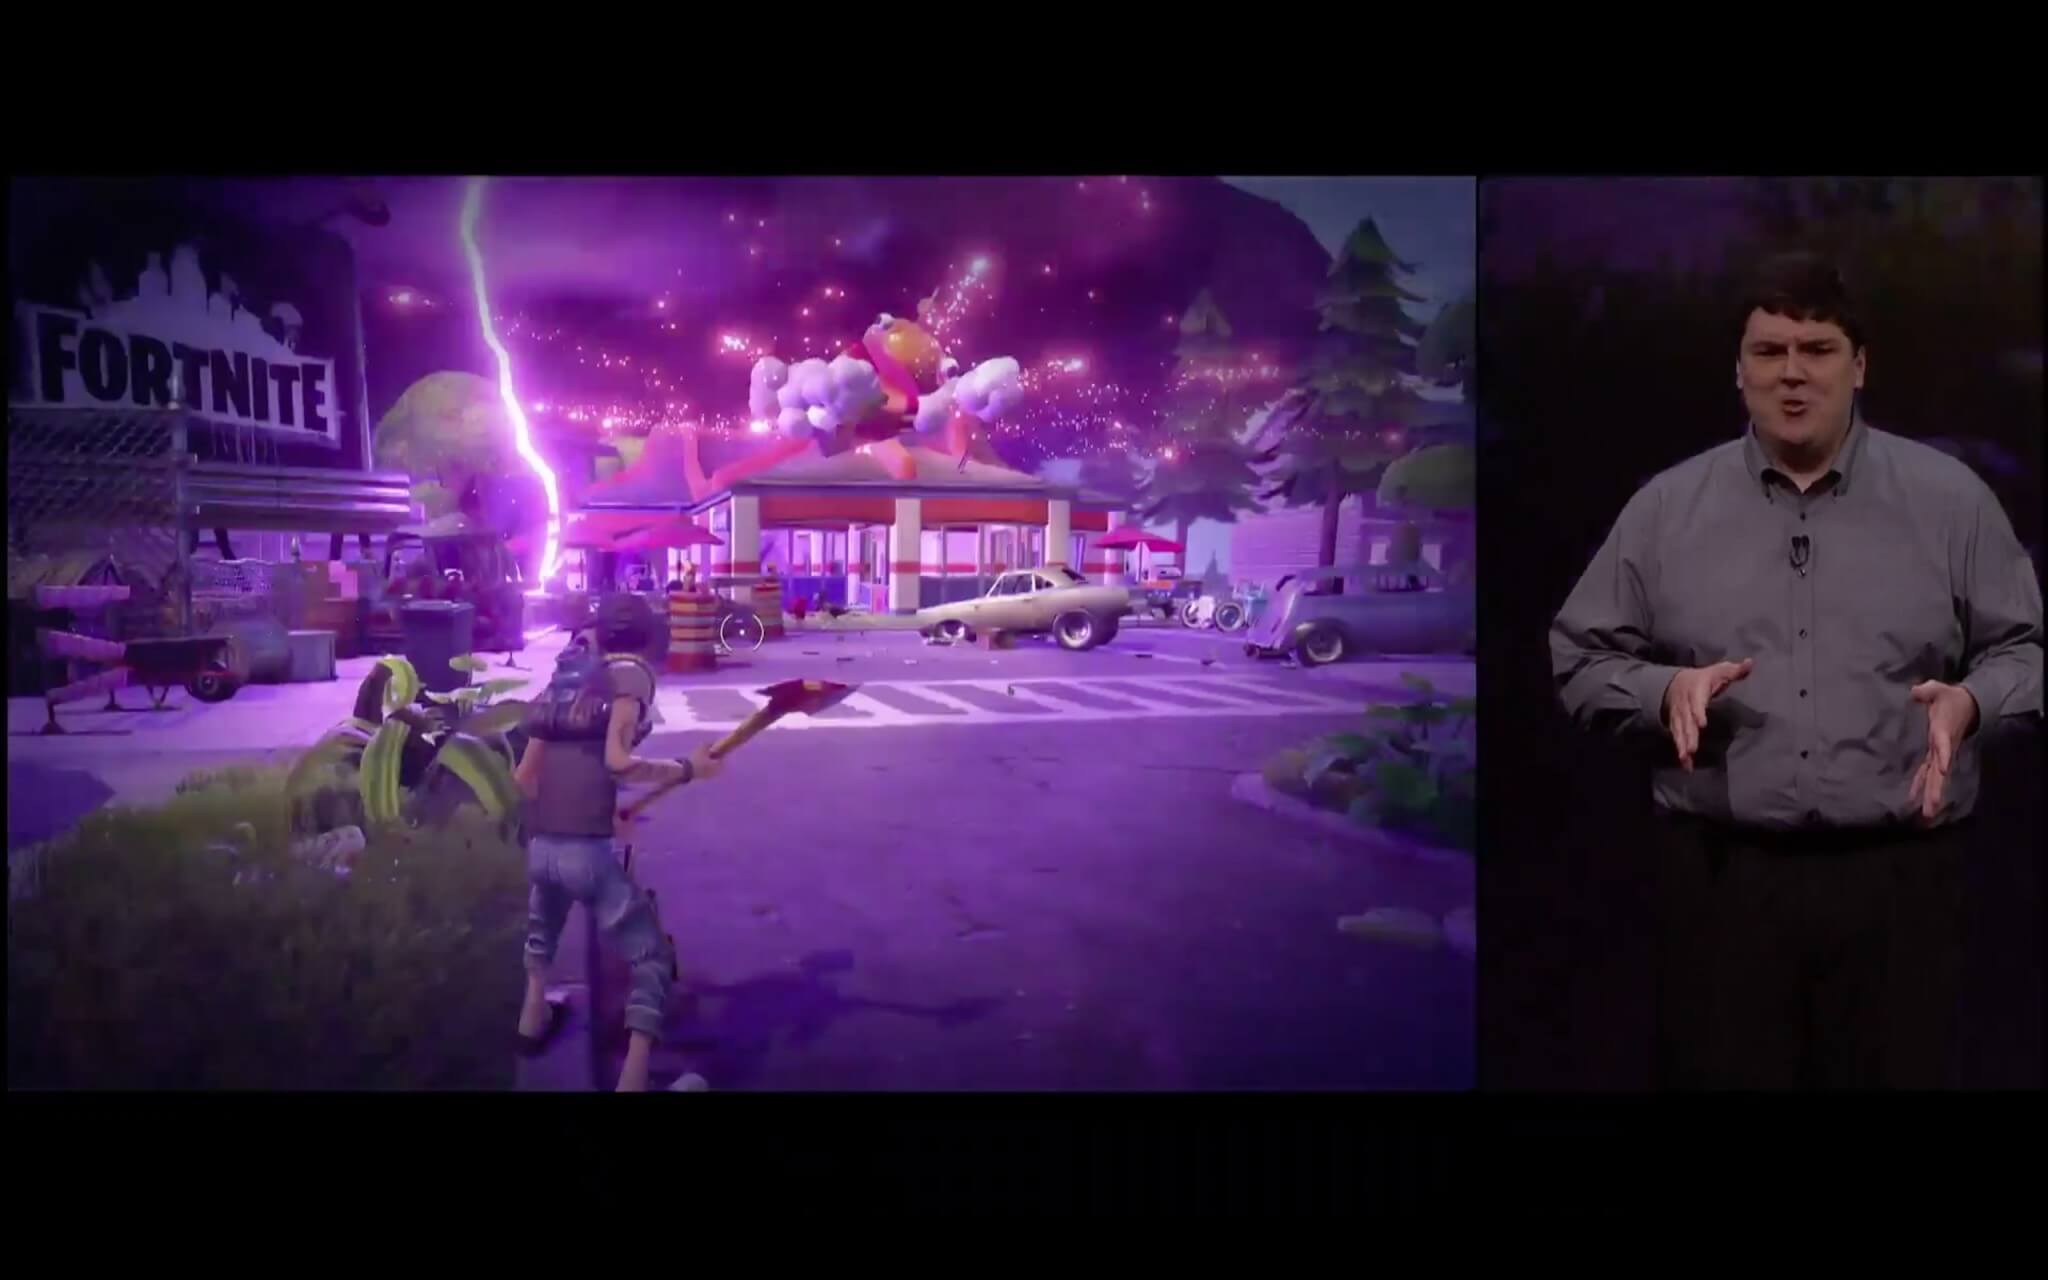 Epic Games präsentiert die Metal-optimierte Grafik in Fortnite (Bildrechte: Apple)